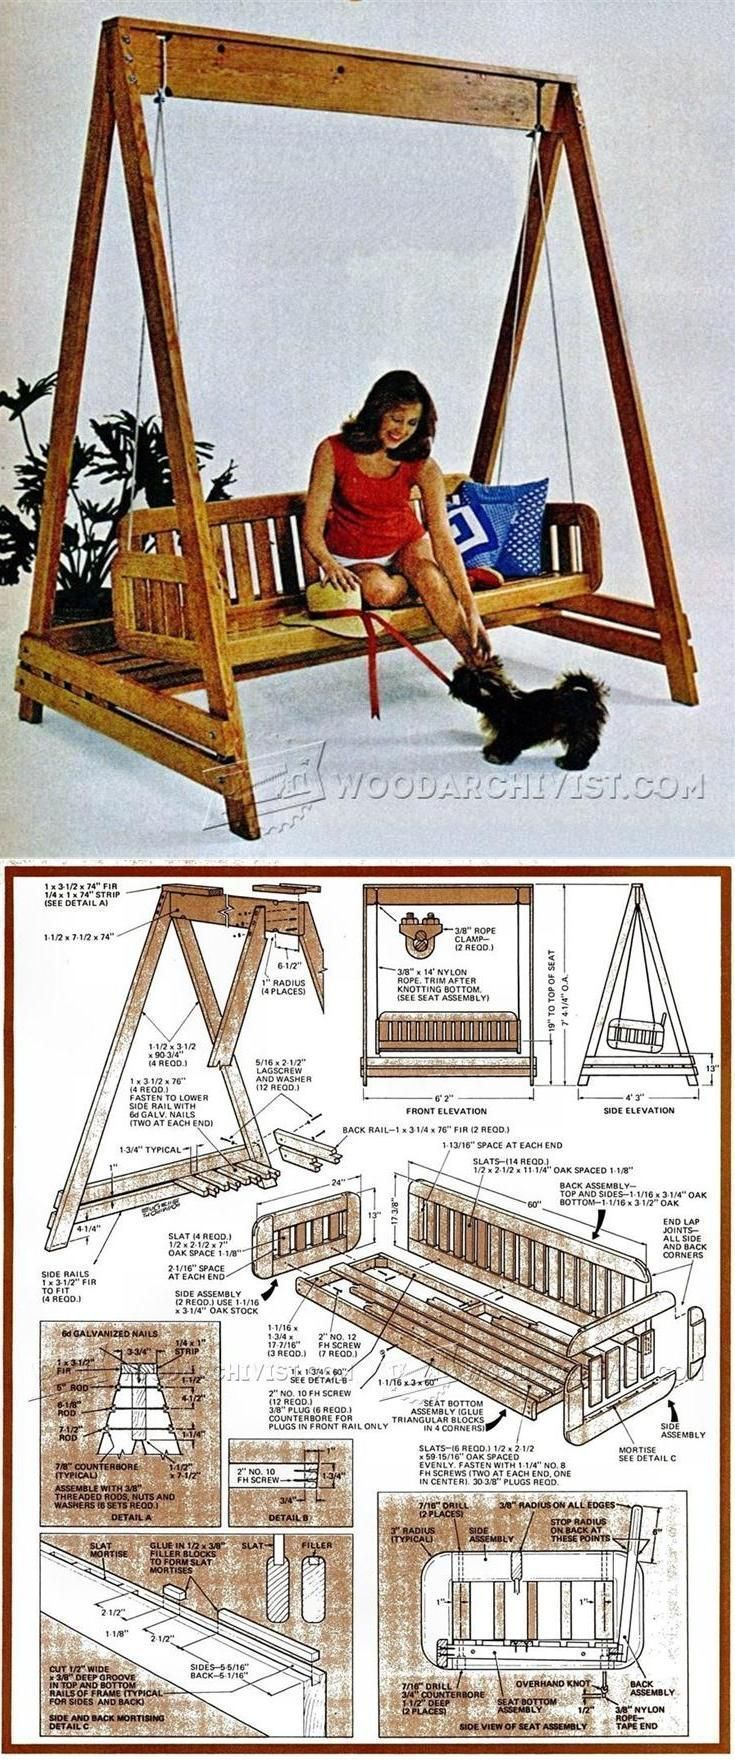 Porch Swing Plans - Outdoor Furniture Plans and Projects | WoodArchivist.com #woodworkingbench